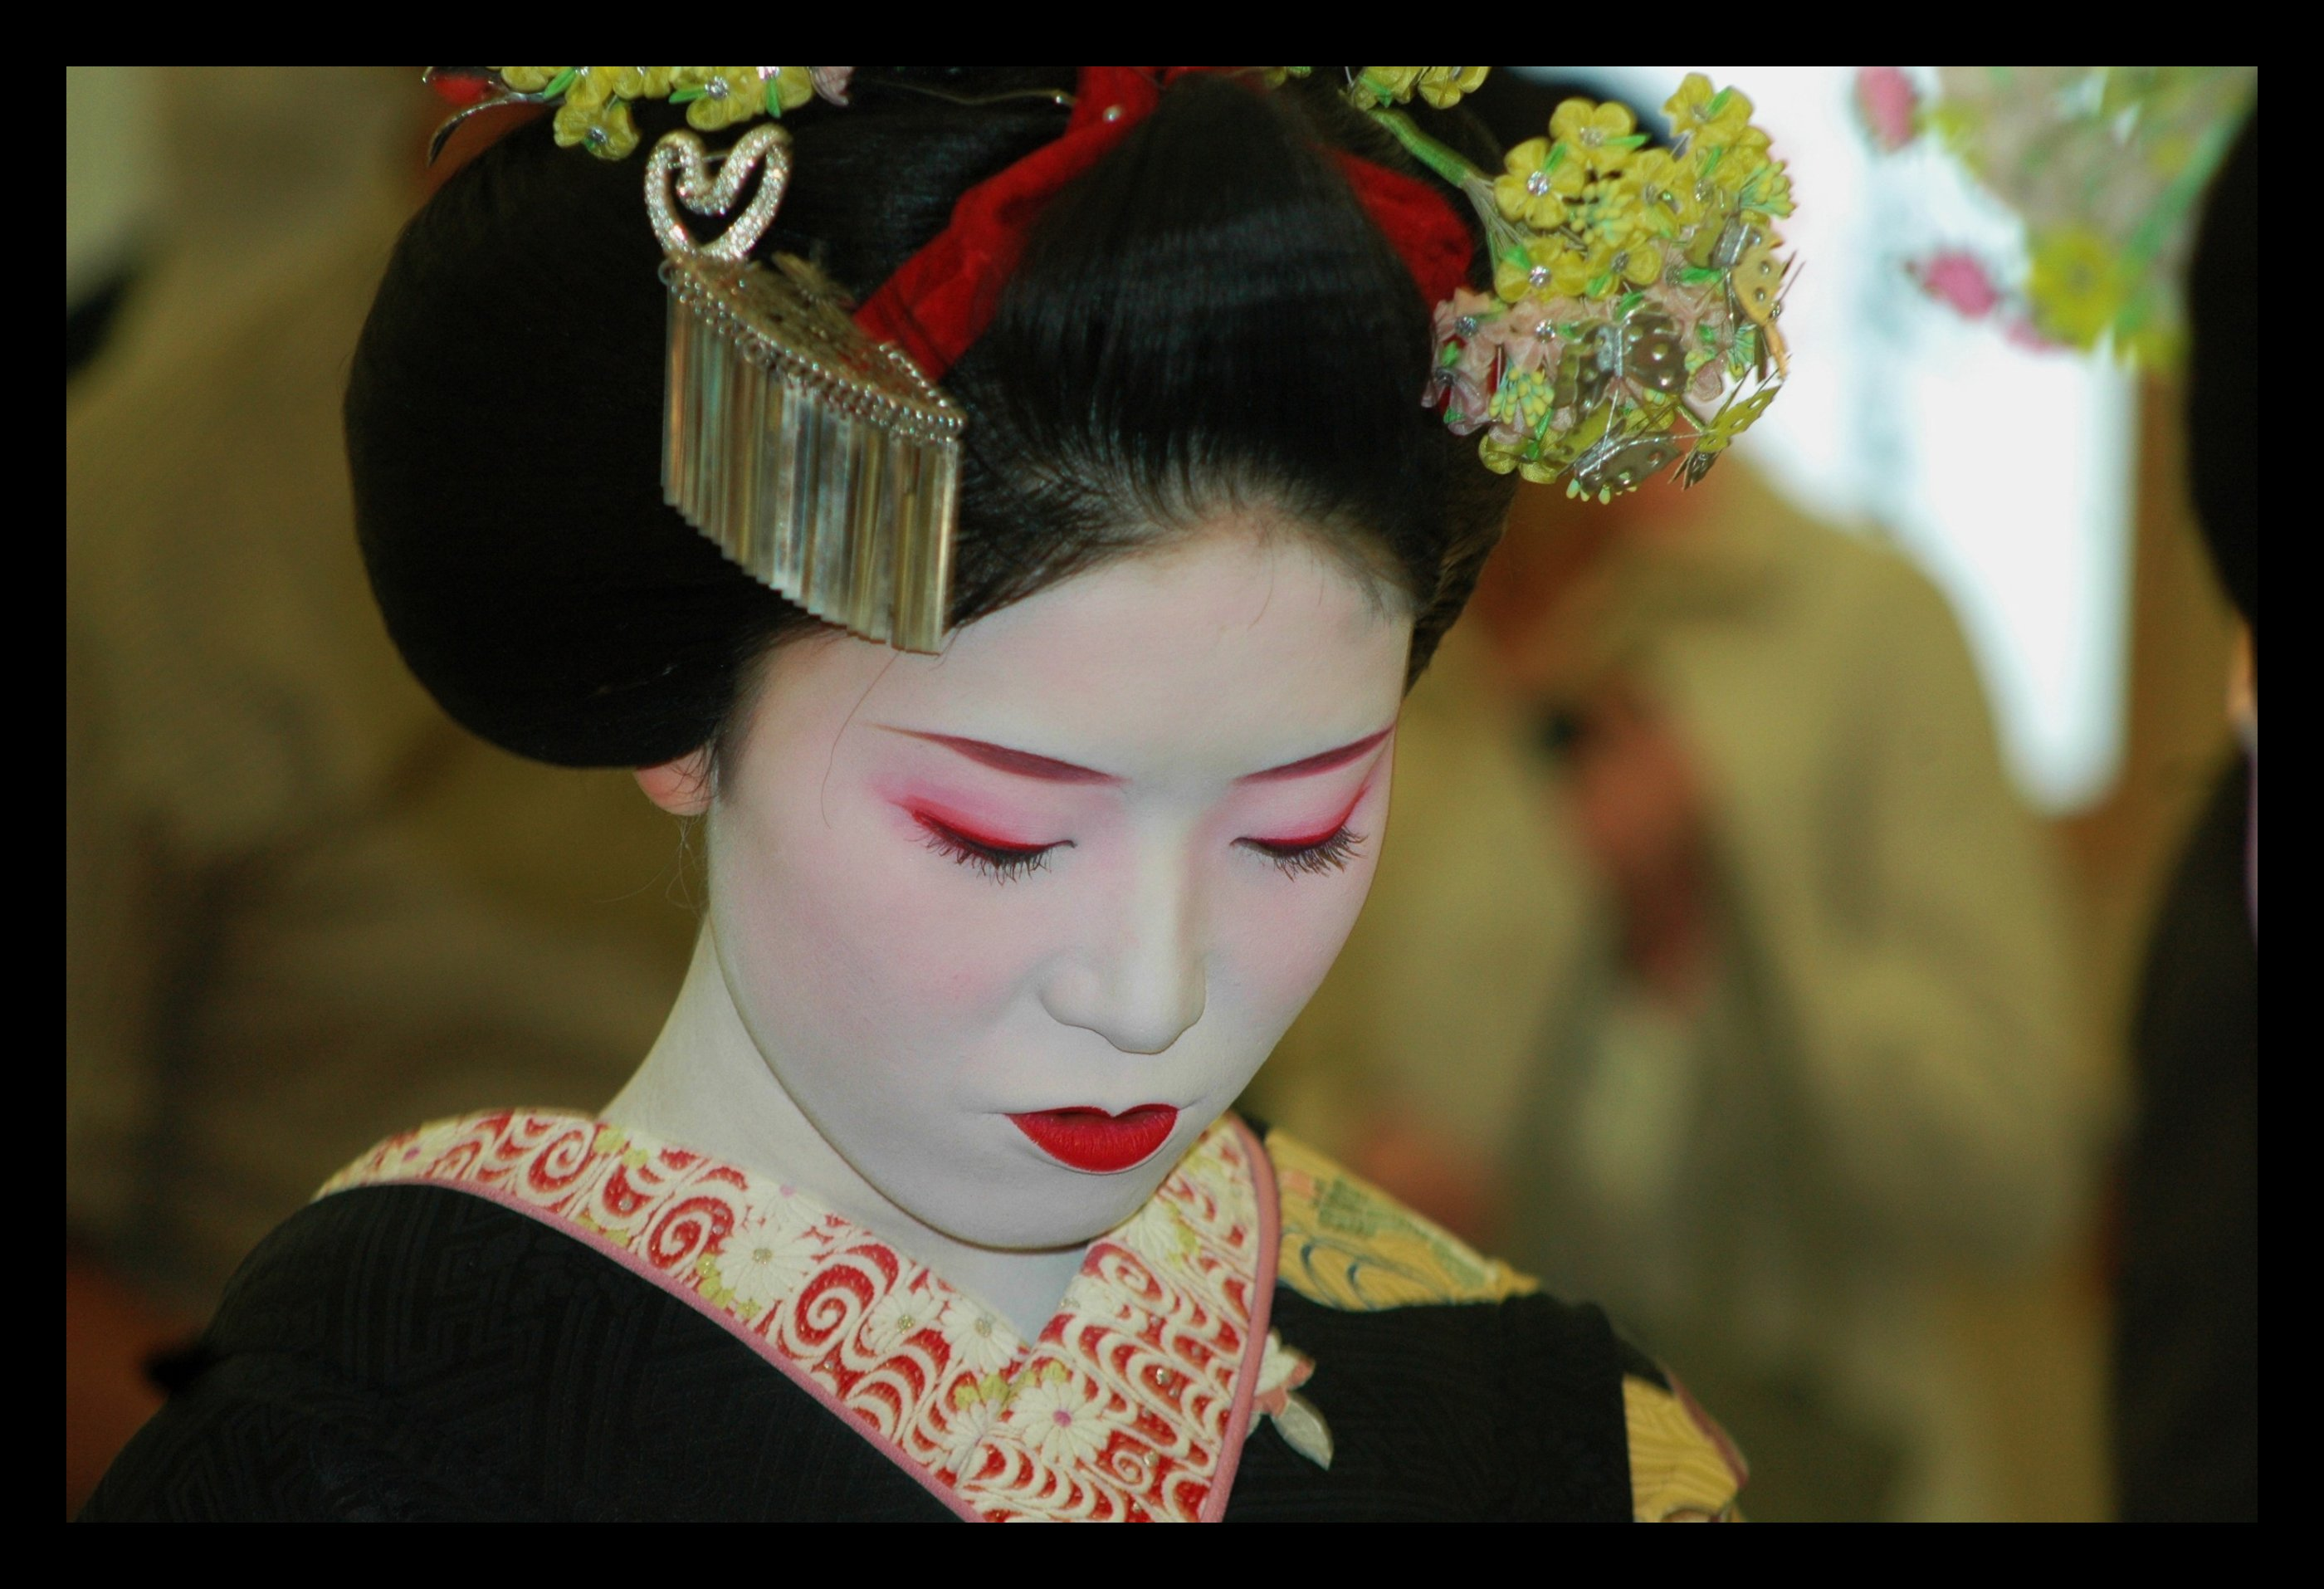 Japan Wallpapers and Images More Japanese Geisha Wallpapers 2800x1914